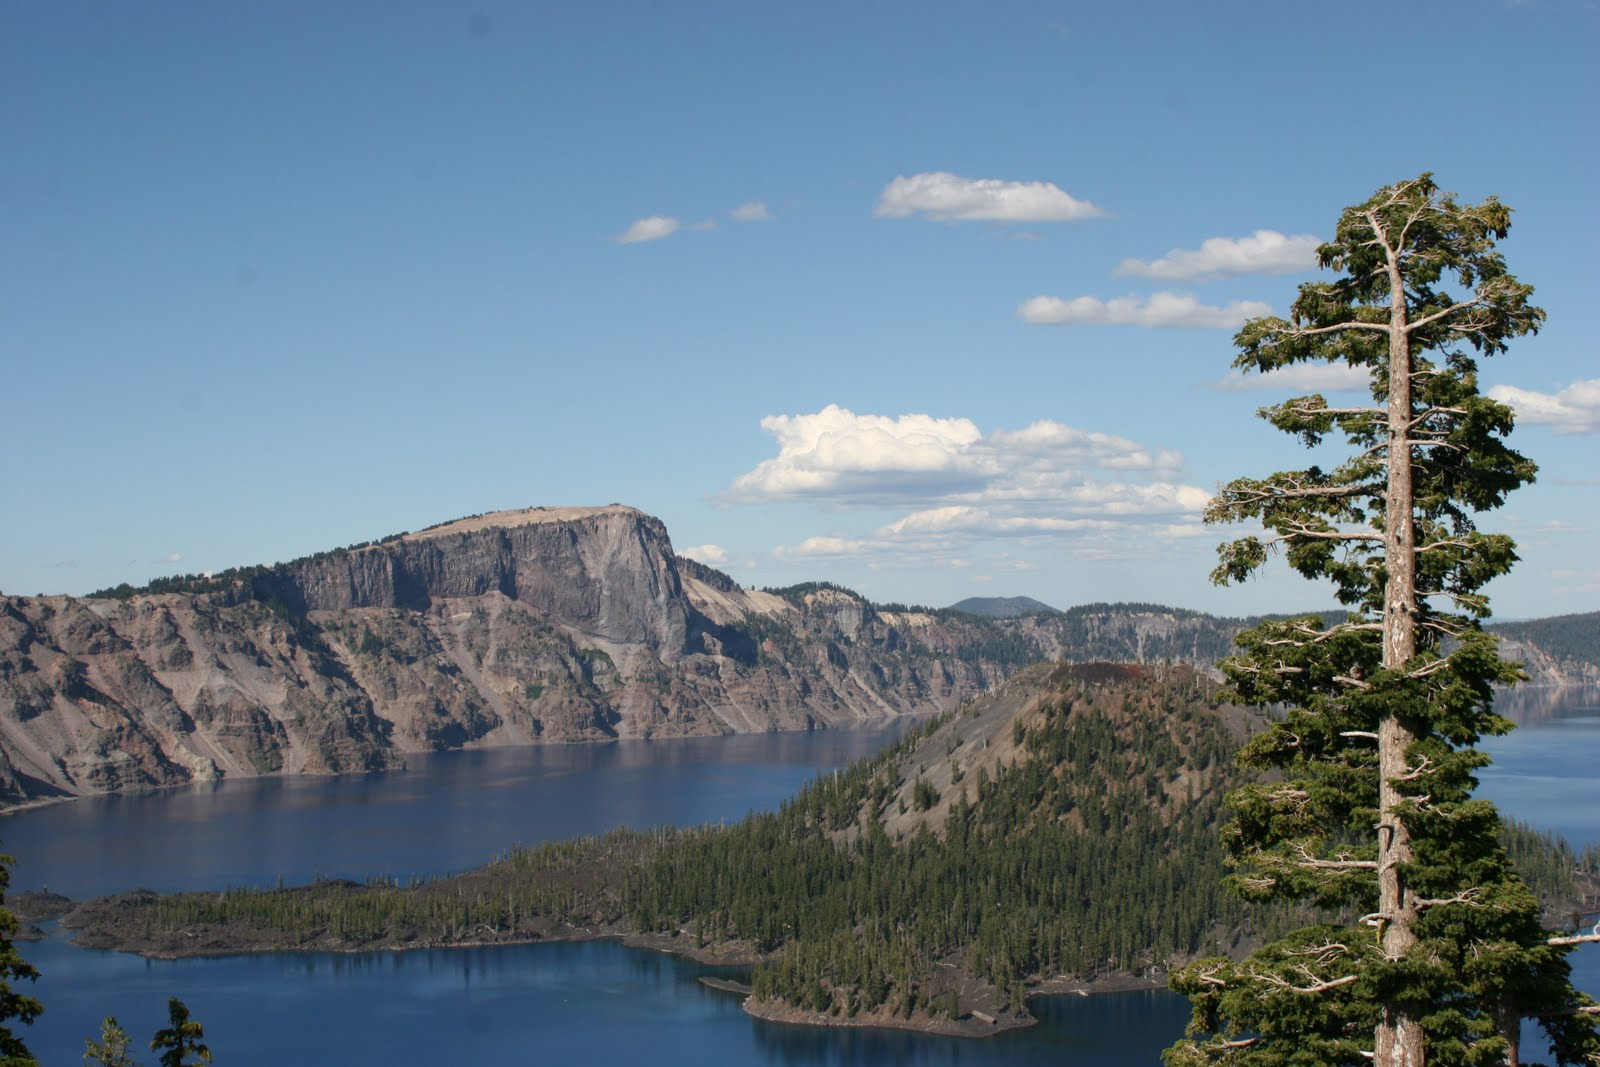 [Crater+Lake+National+Park+(25).JPG]